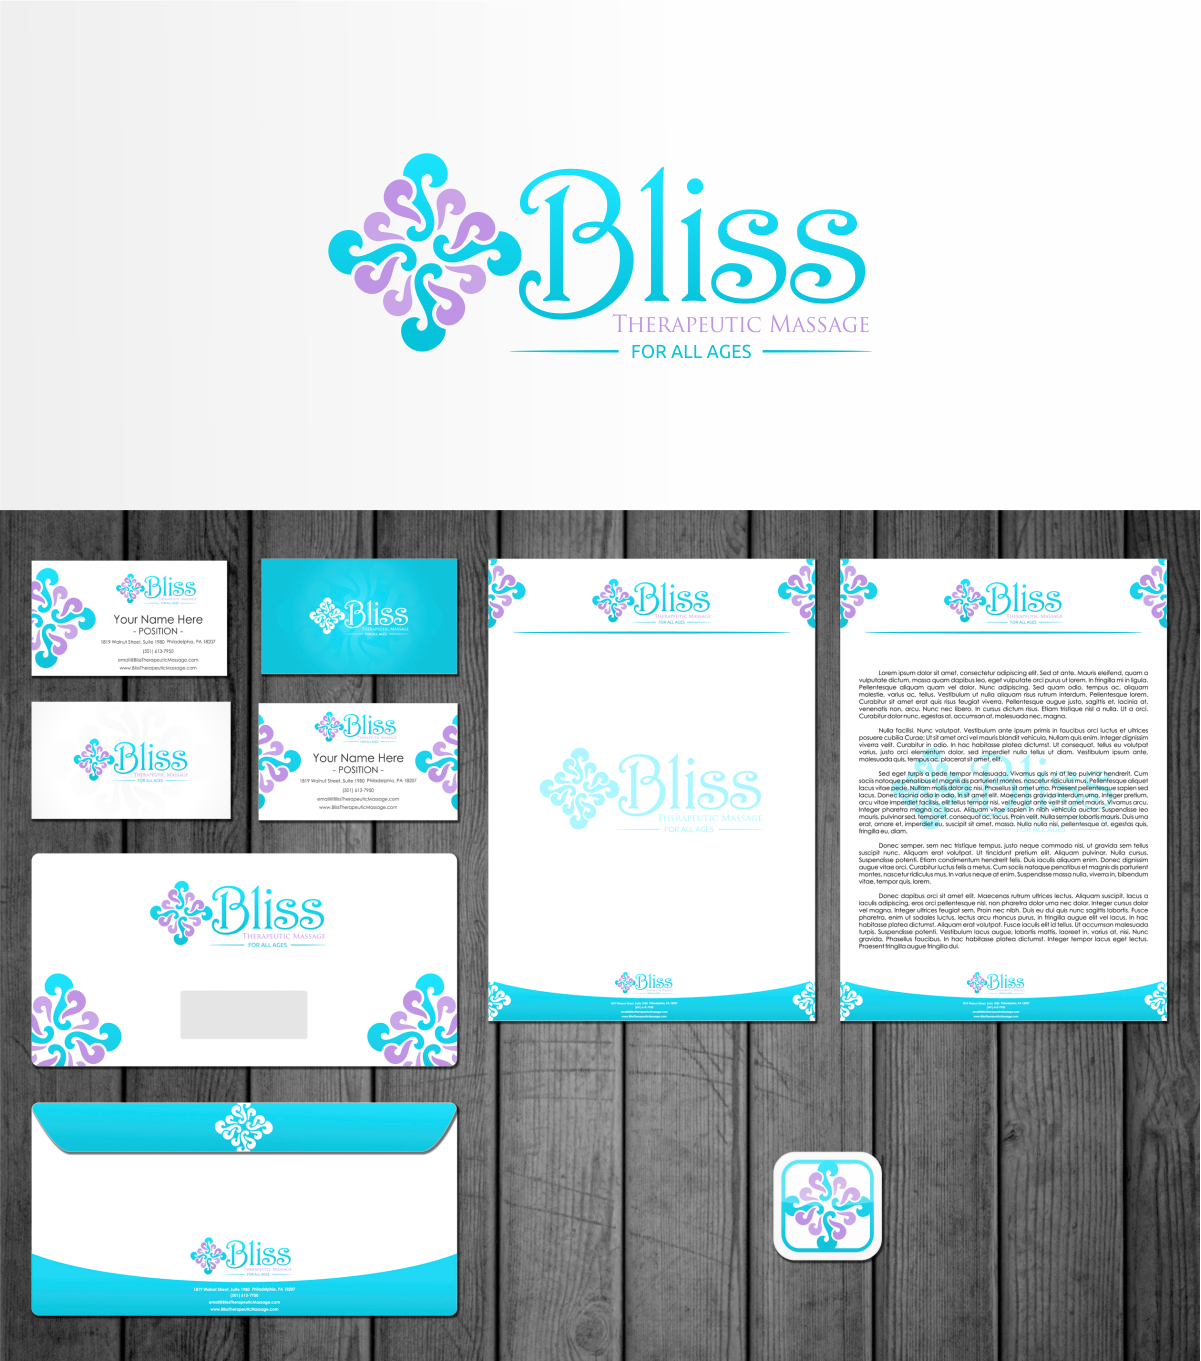 Bliss Therapeutic Massage or Bliss Massage needs a new logo